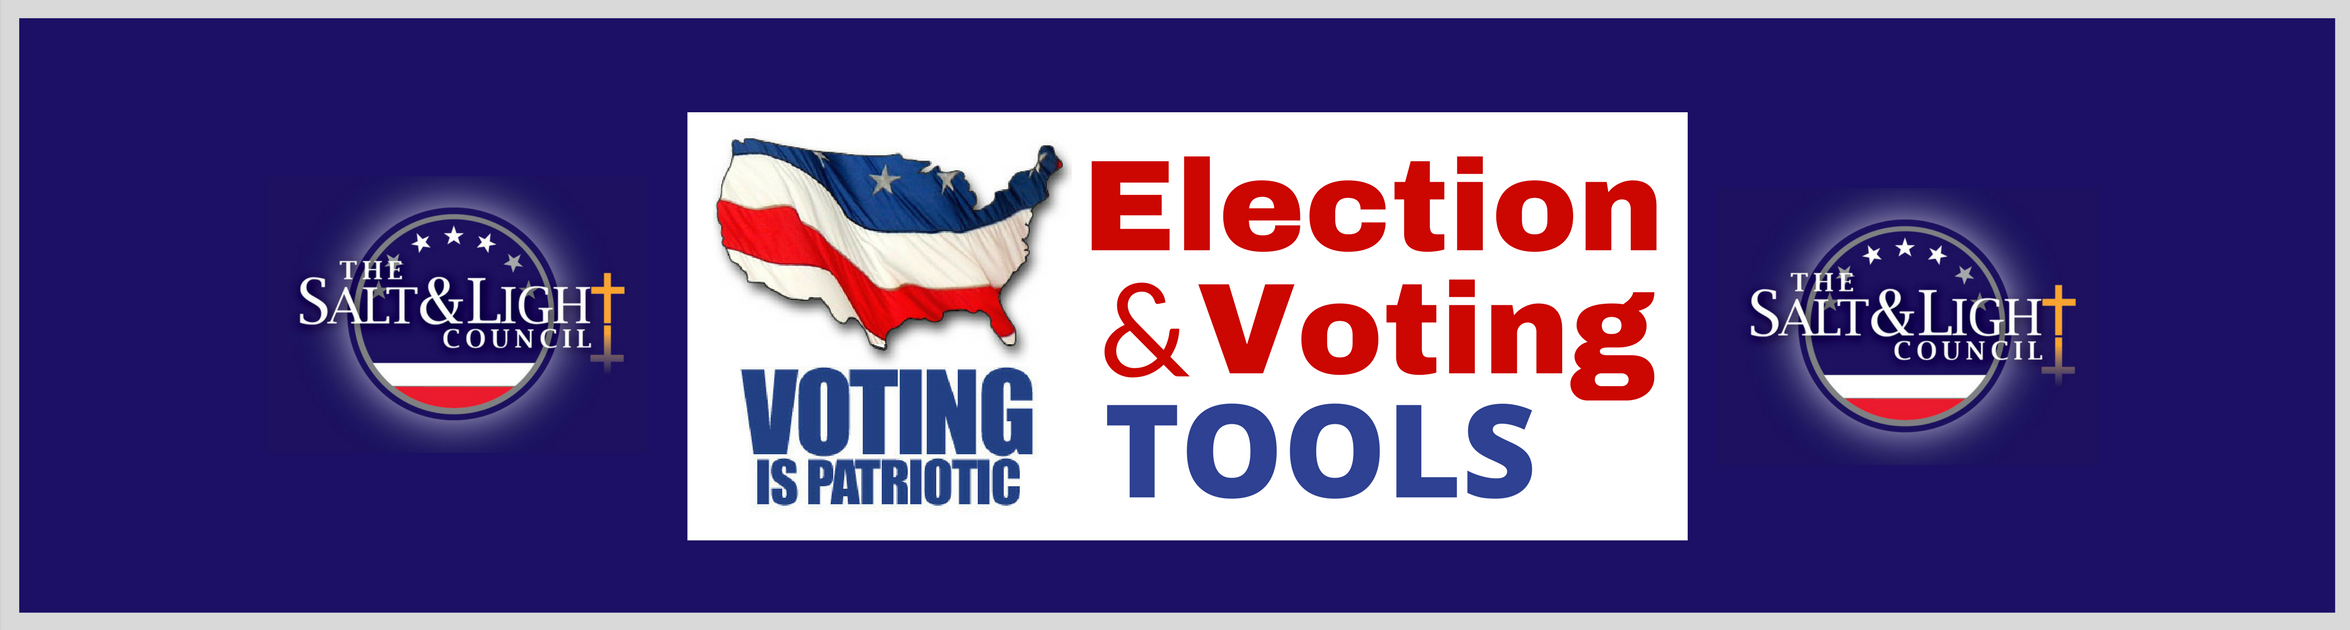 2018 SSC Election & Voting Tools.png